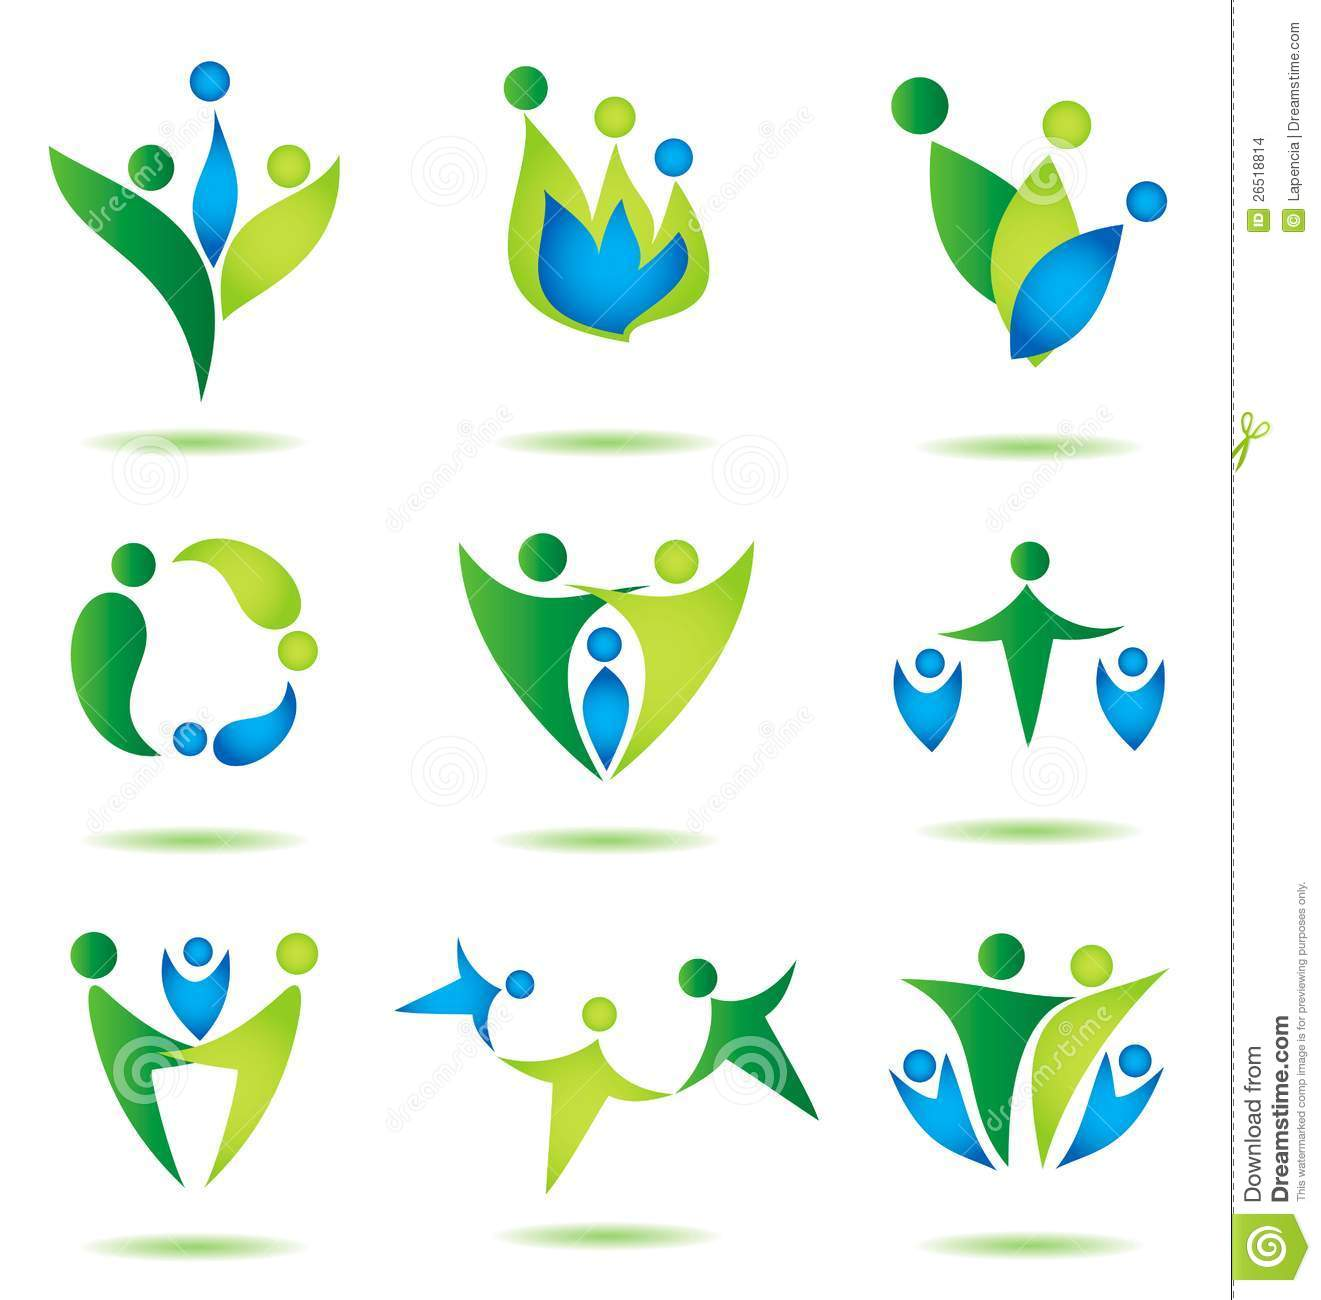 ... family icons collection multicolored in simple figures, logo design